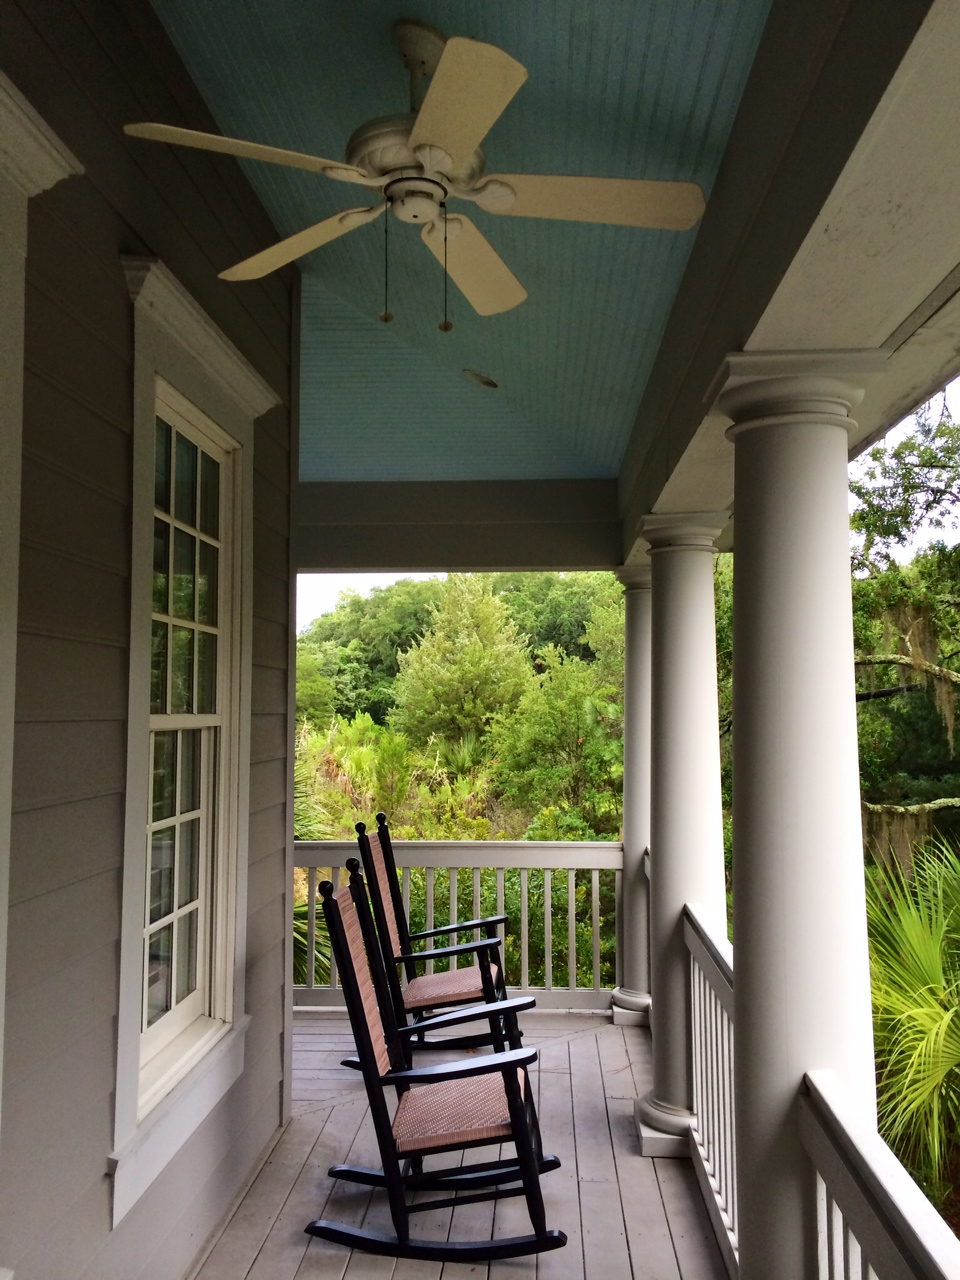 My parents painted the ceiling of their front porch haint blue, a tradition in the Lowcountry